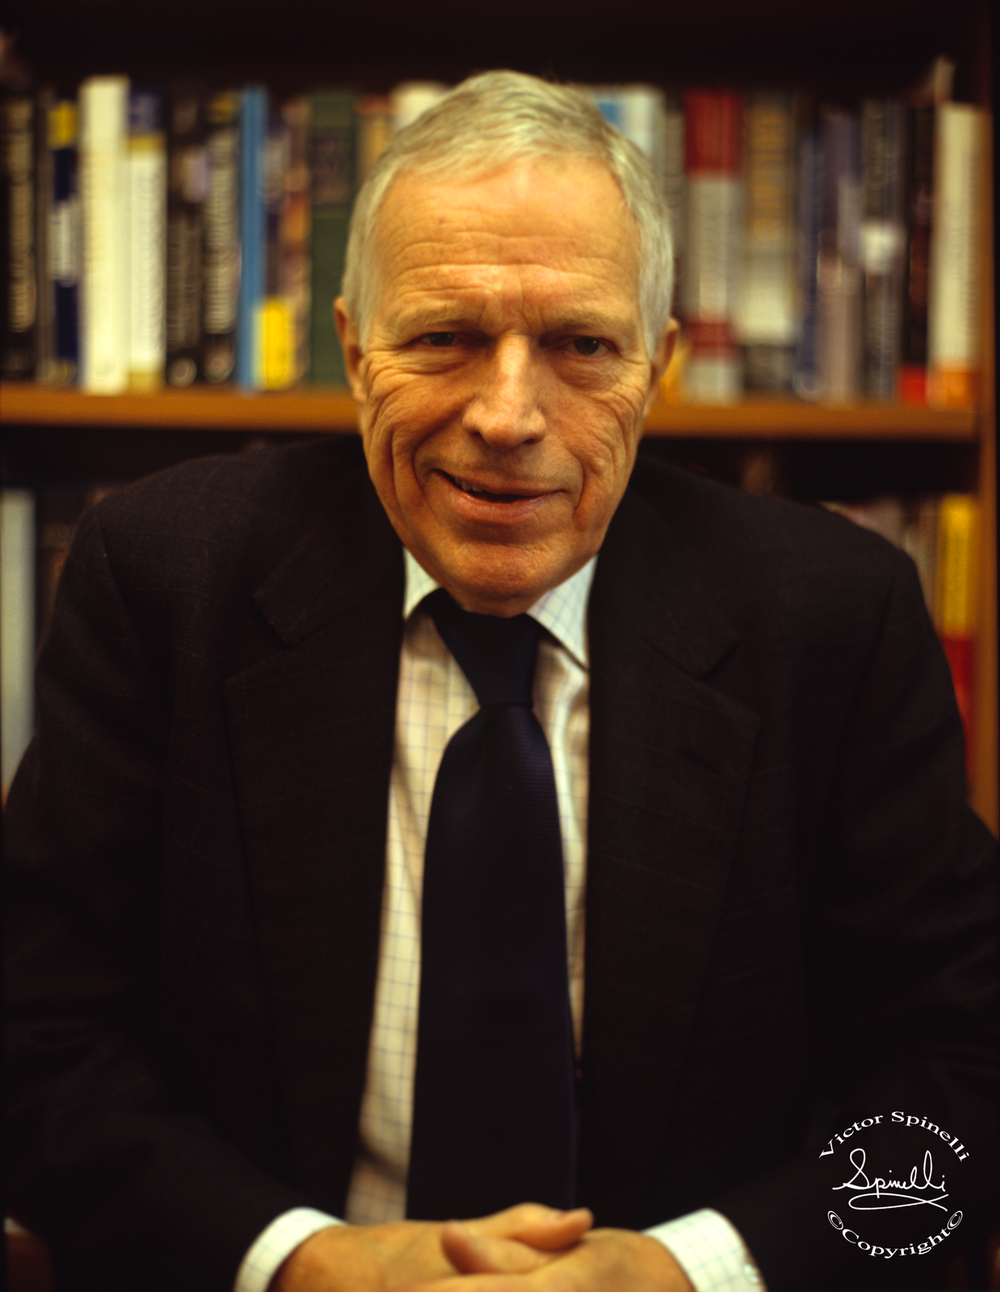 Professor Edmund Phelps, a portrait from my Nobel Prize Winner Series. Professor Phelps won the Nobel Economic Sciences Prize in 2006. I took this portrait of him at Columbia University where he continues as McVickar Professor of Political Economy and also Director of Columbia's Center on Capitalism and Society. ©   More information about Professor Phelps can be found here:  http://www.edmundphelps.com/